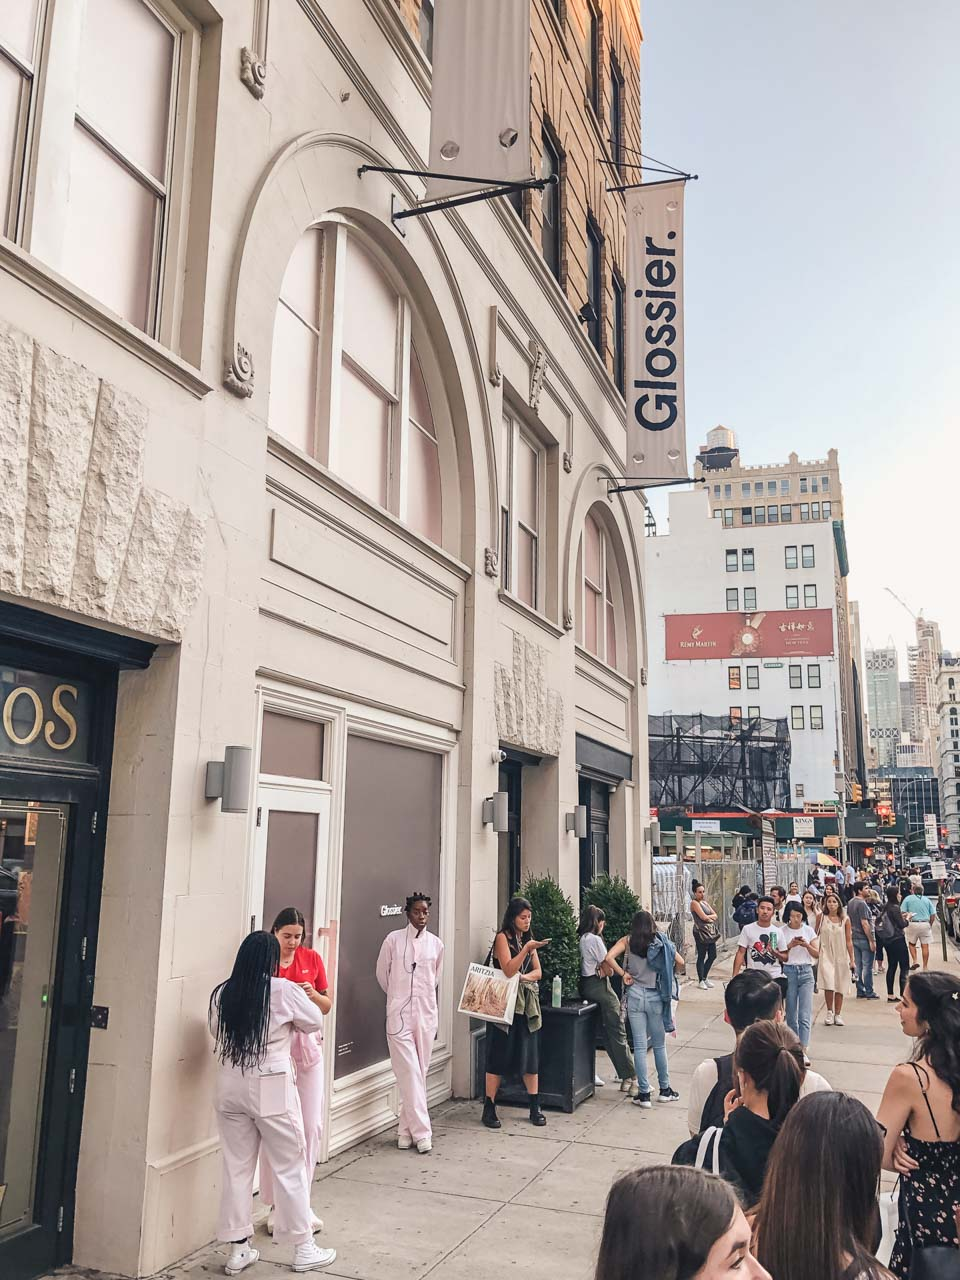 The entrance to the Glossier flagship store in New York City